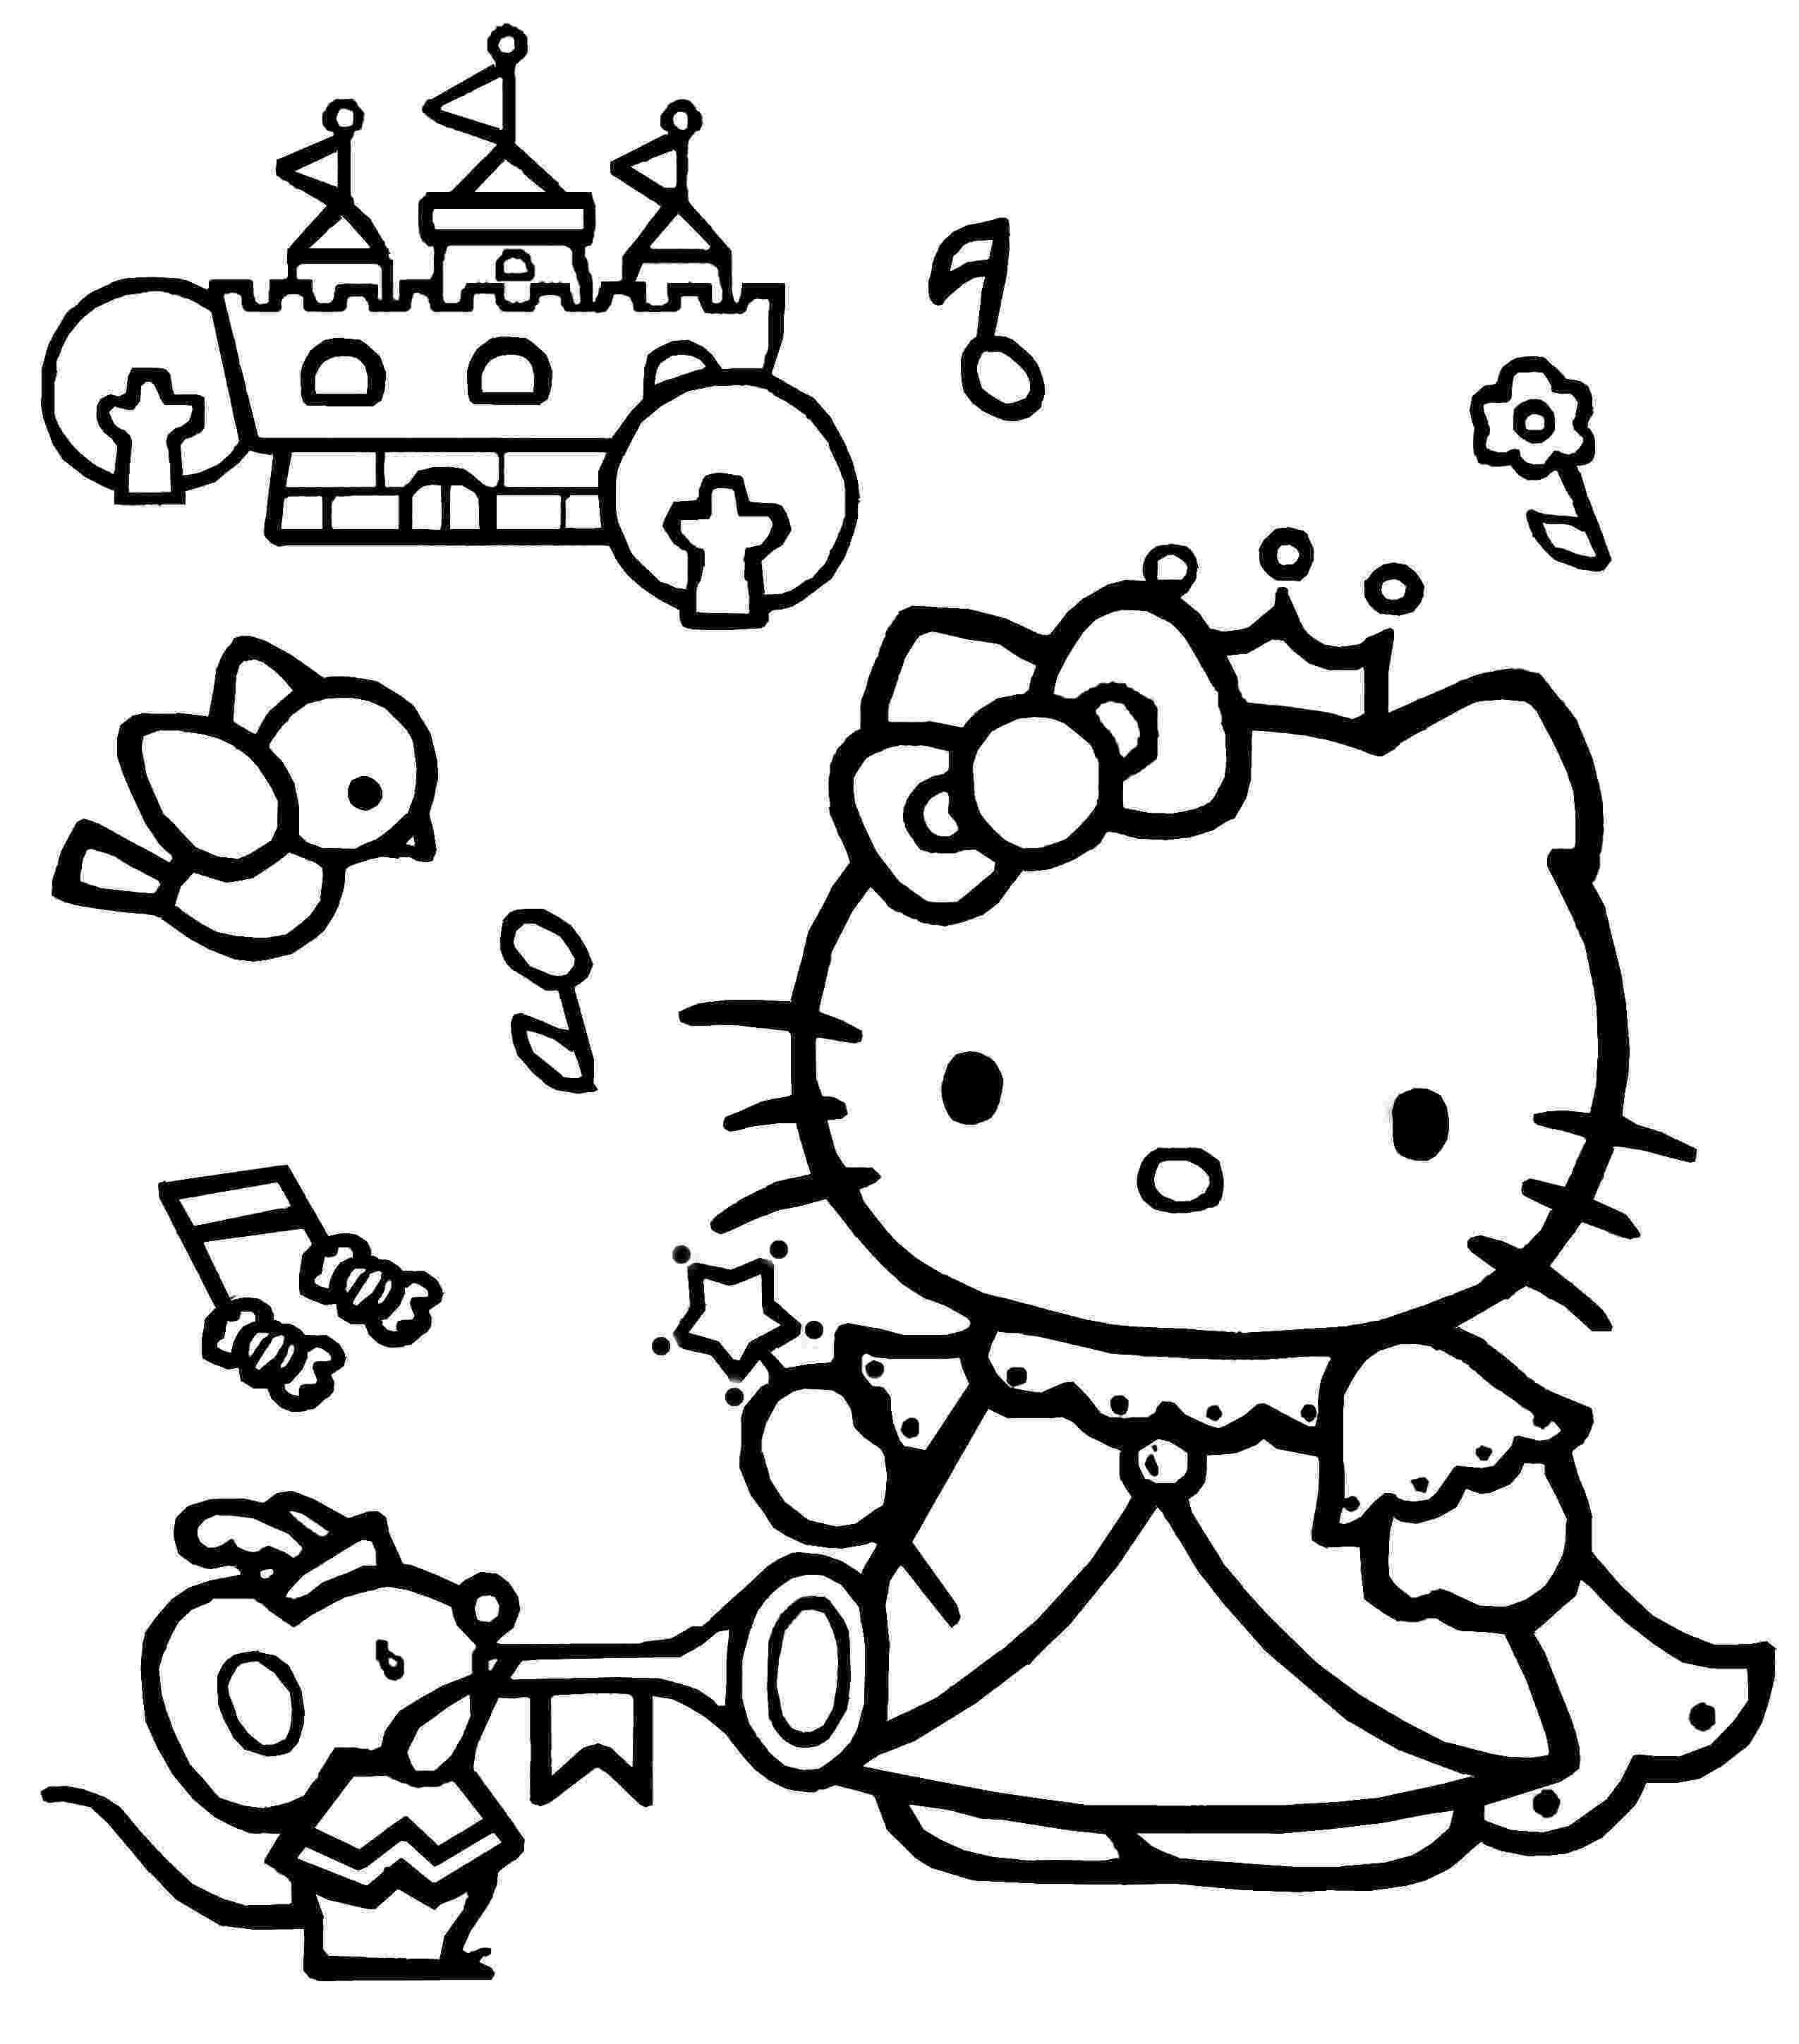 princess hello kitty coloring pages pin by nancy boyer on hello kitty hello kitty colouring kitty coloring princess pages hello